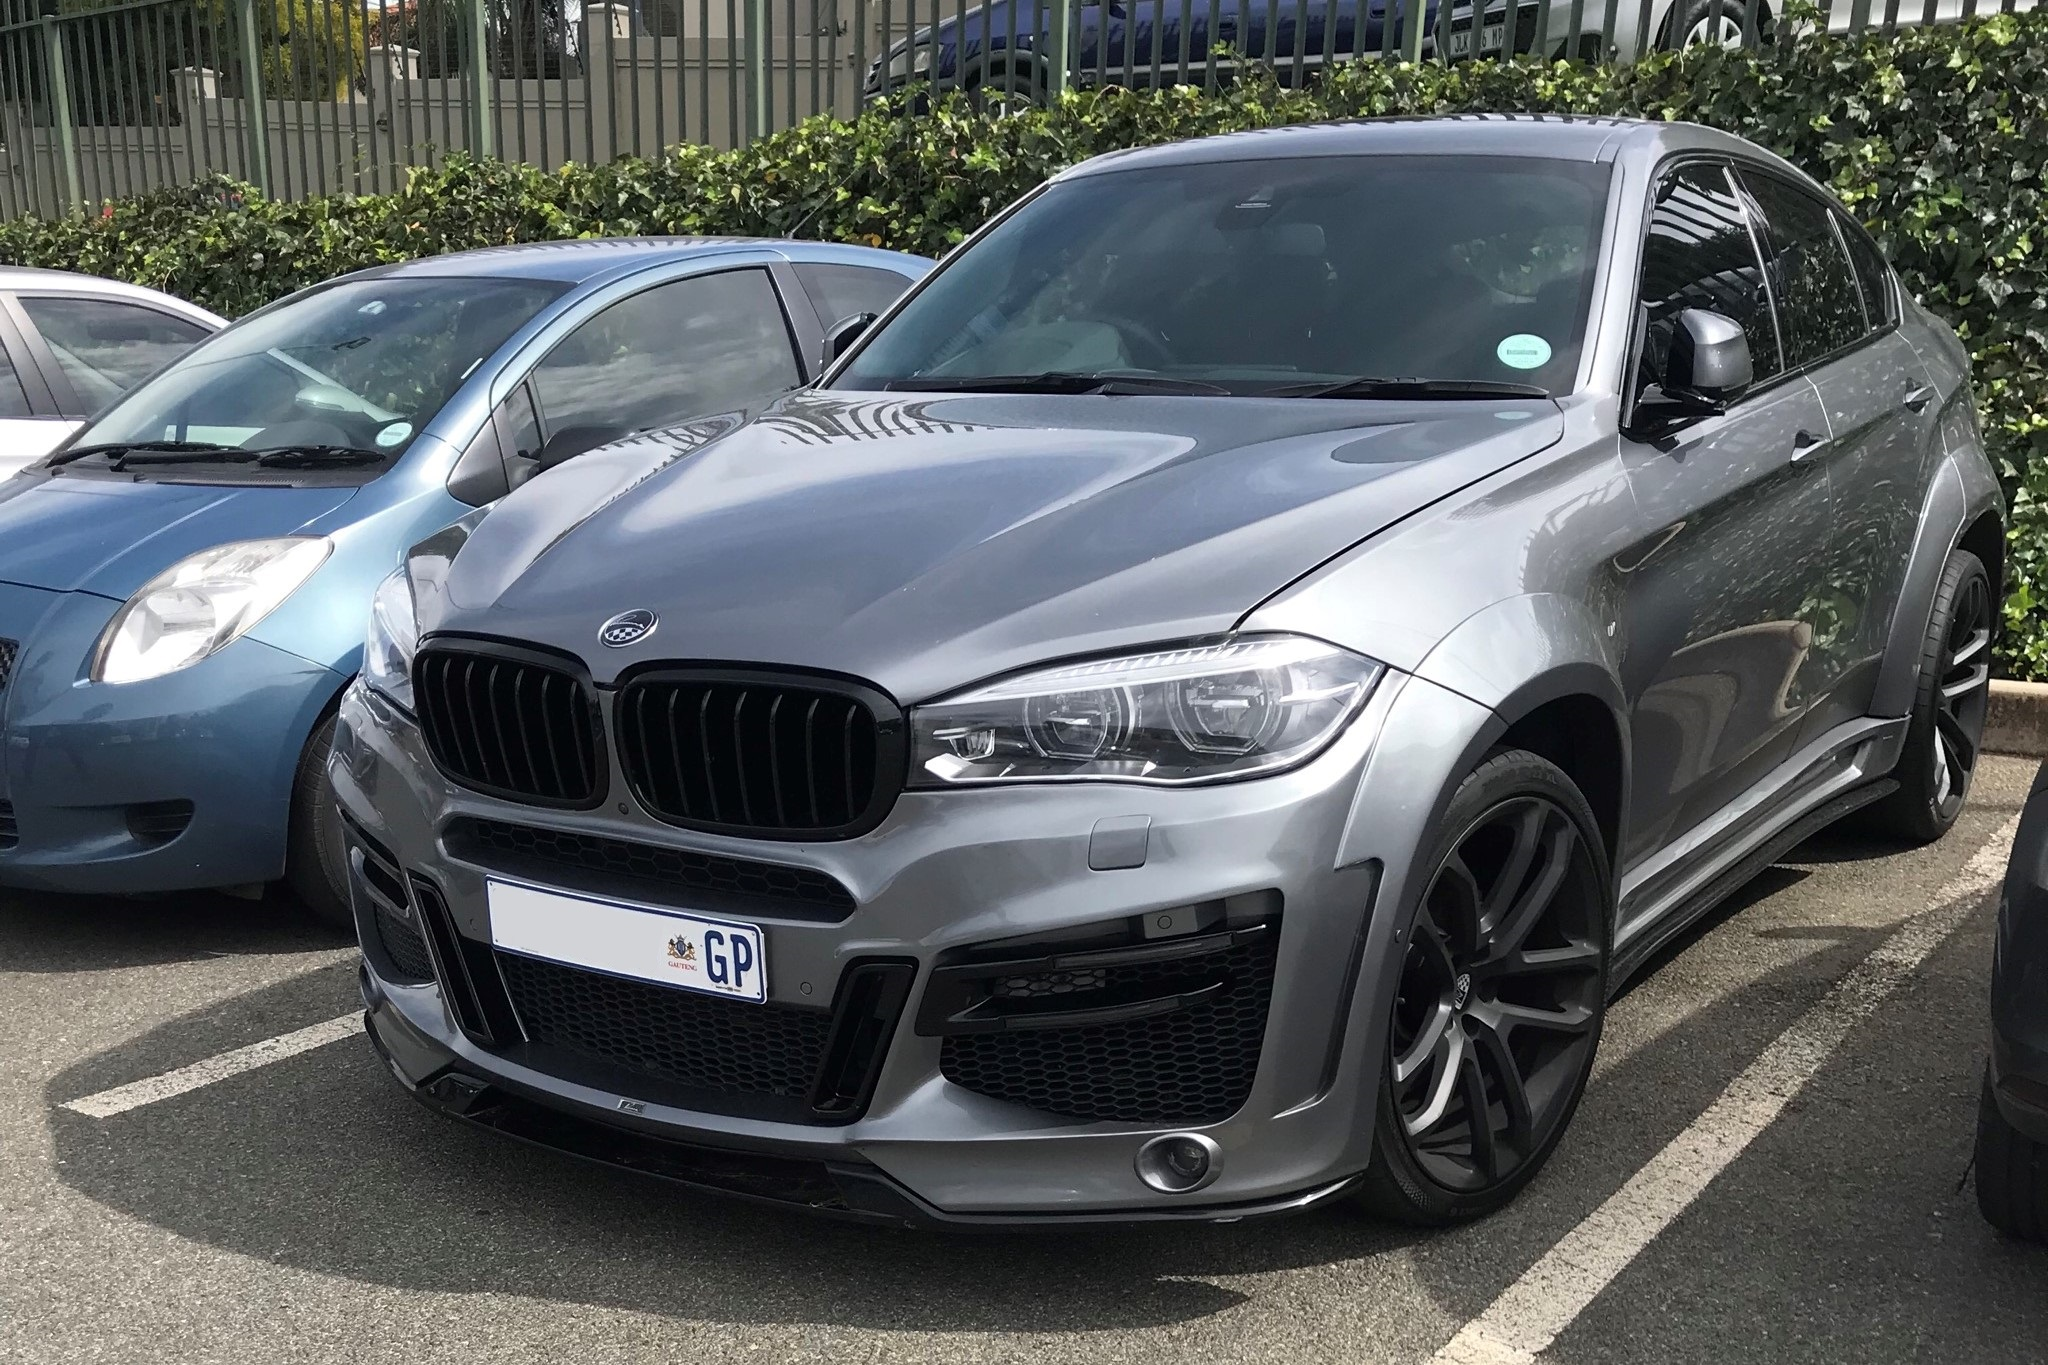 Bmw X6m For Sale Sell Used X6 M Tycoon Evo Over 145k Msrp